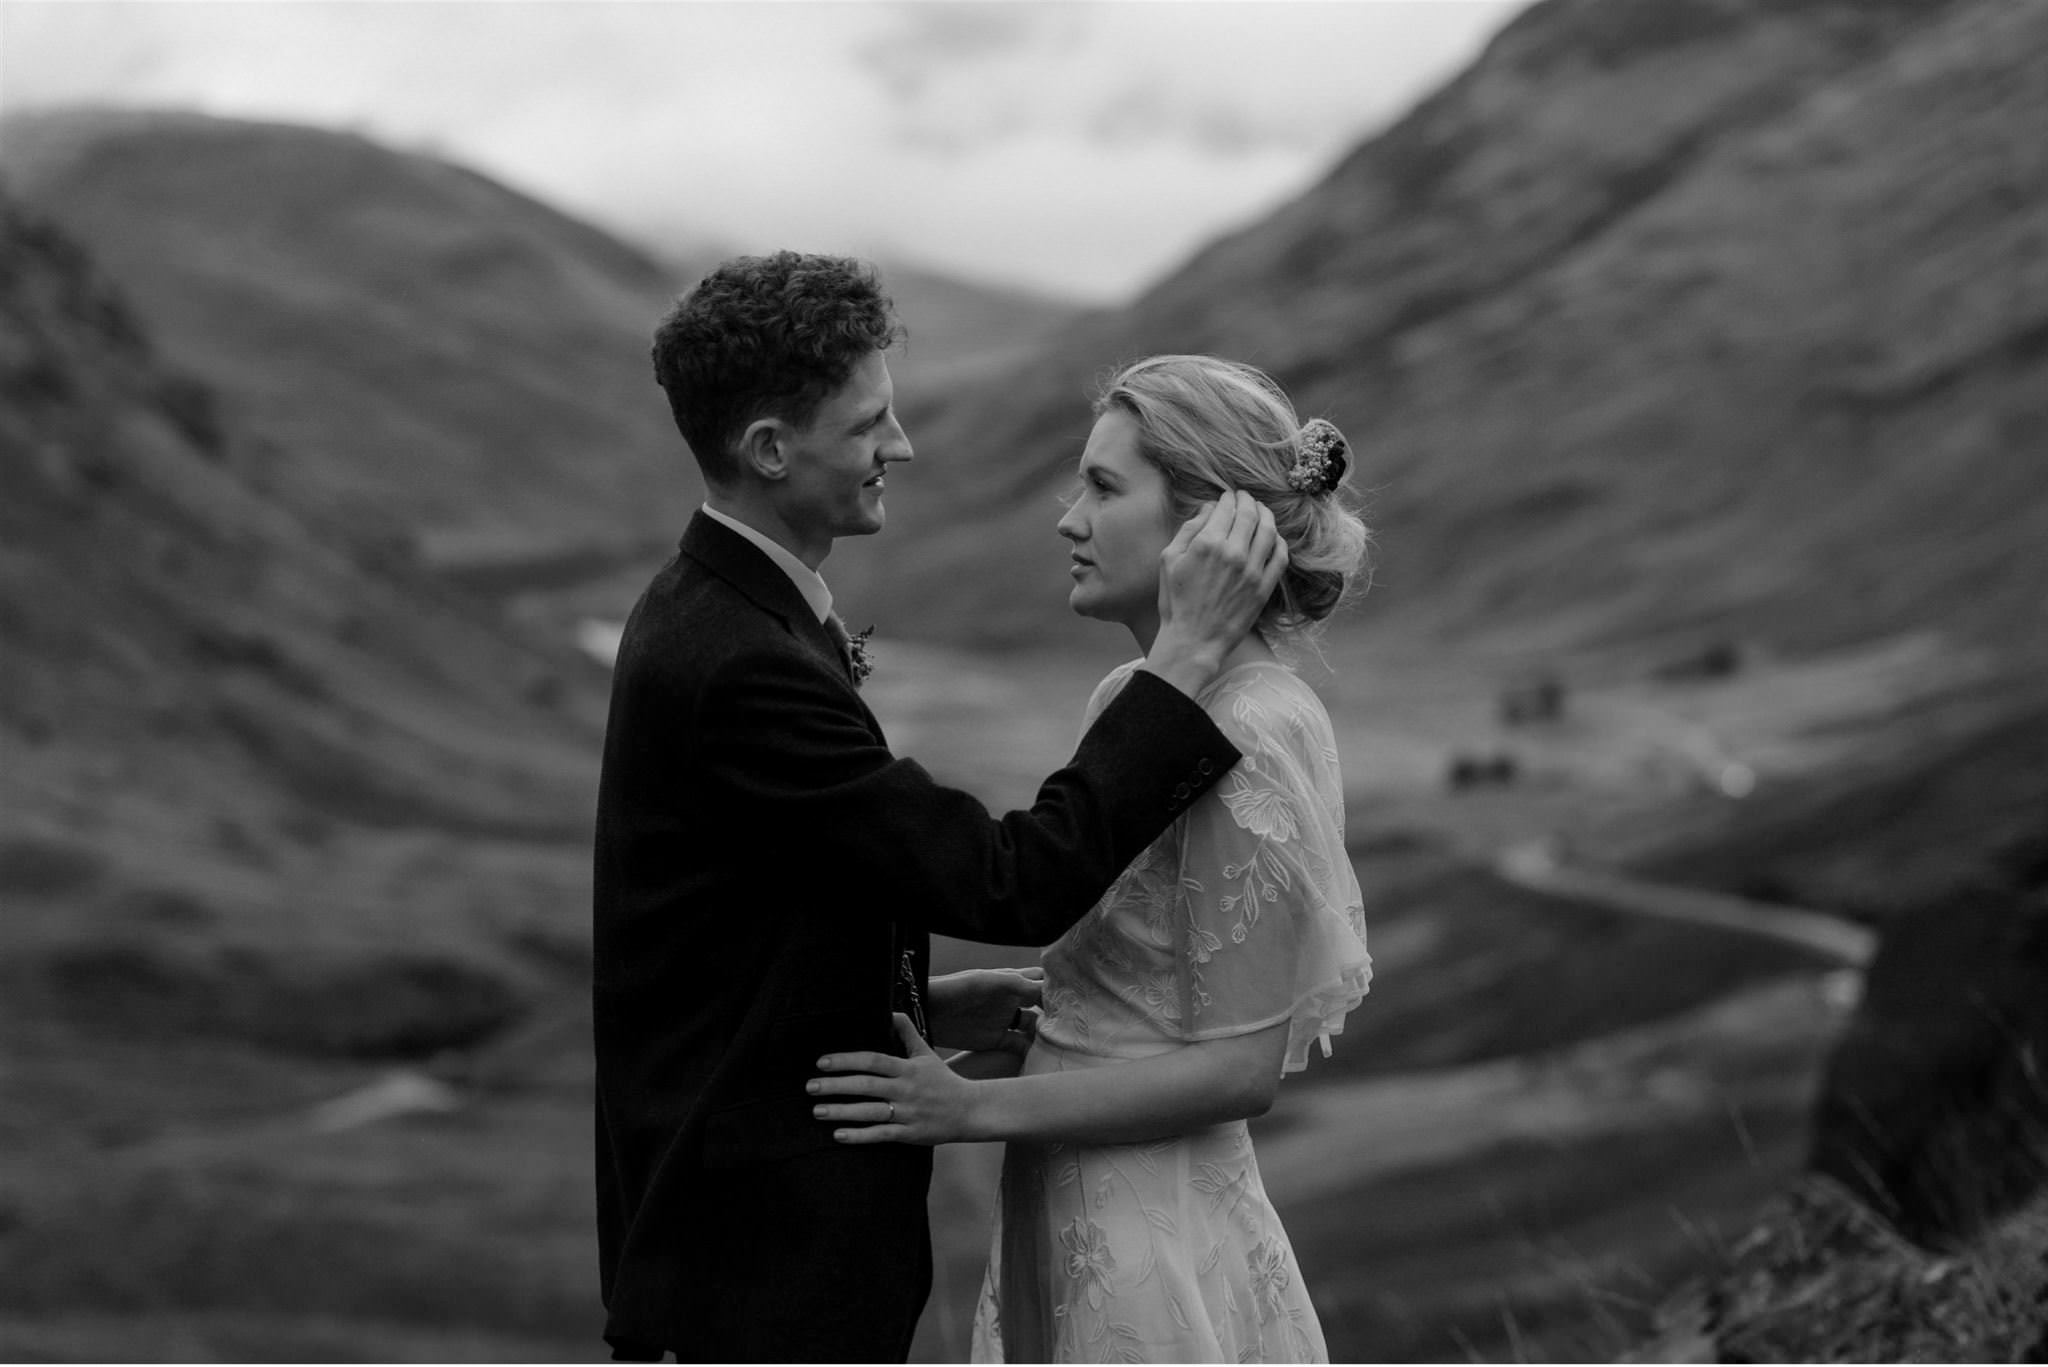 Groom caresses bride during their elopement in Glencoe, Scotland